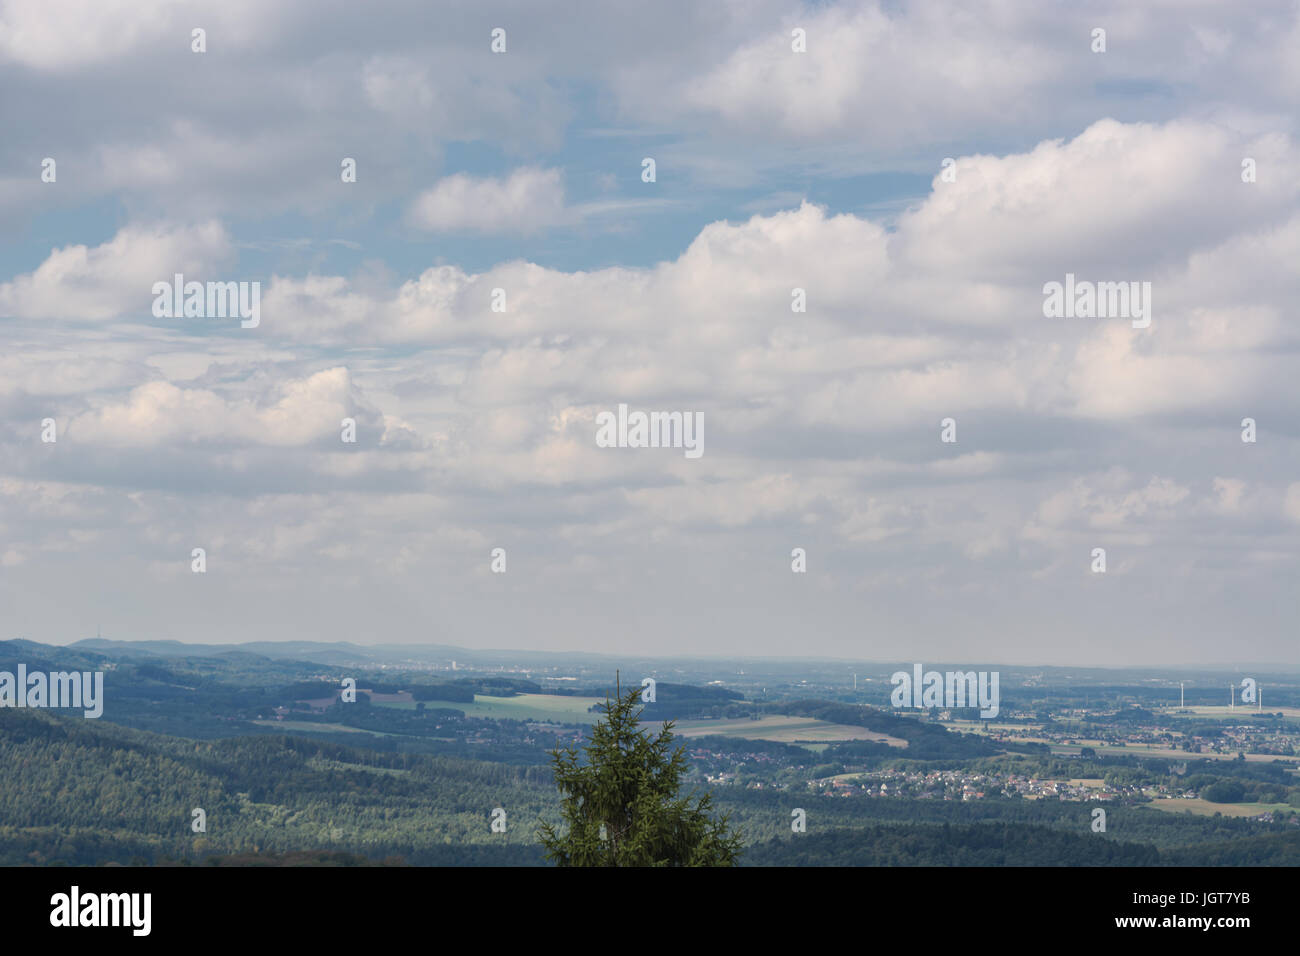 Panoramic view from Hermannsdenkmal to the Teutoburg Forest near Detmold, North Rhine-Westphalia. - Stock Image